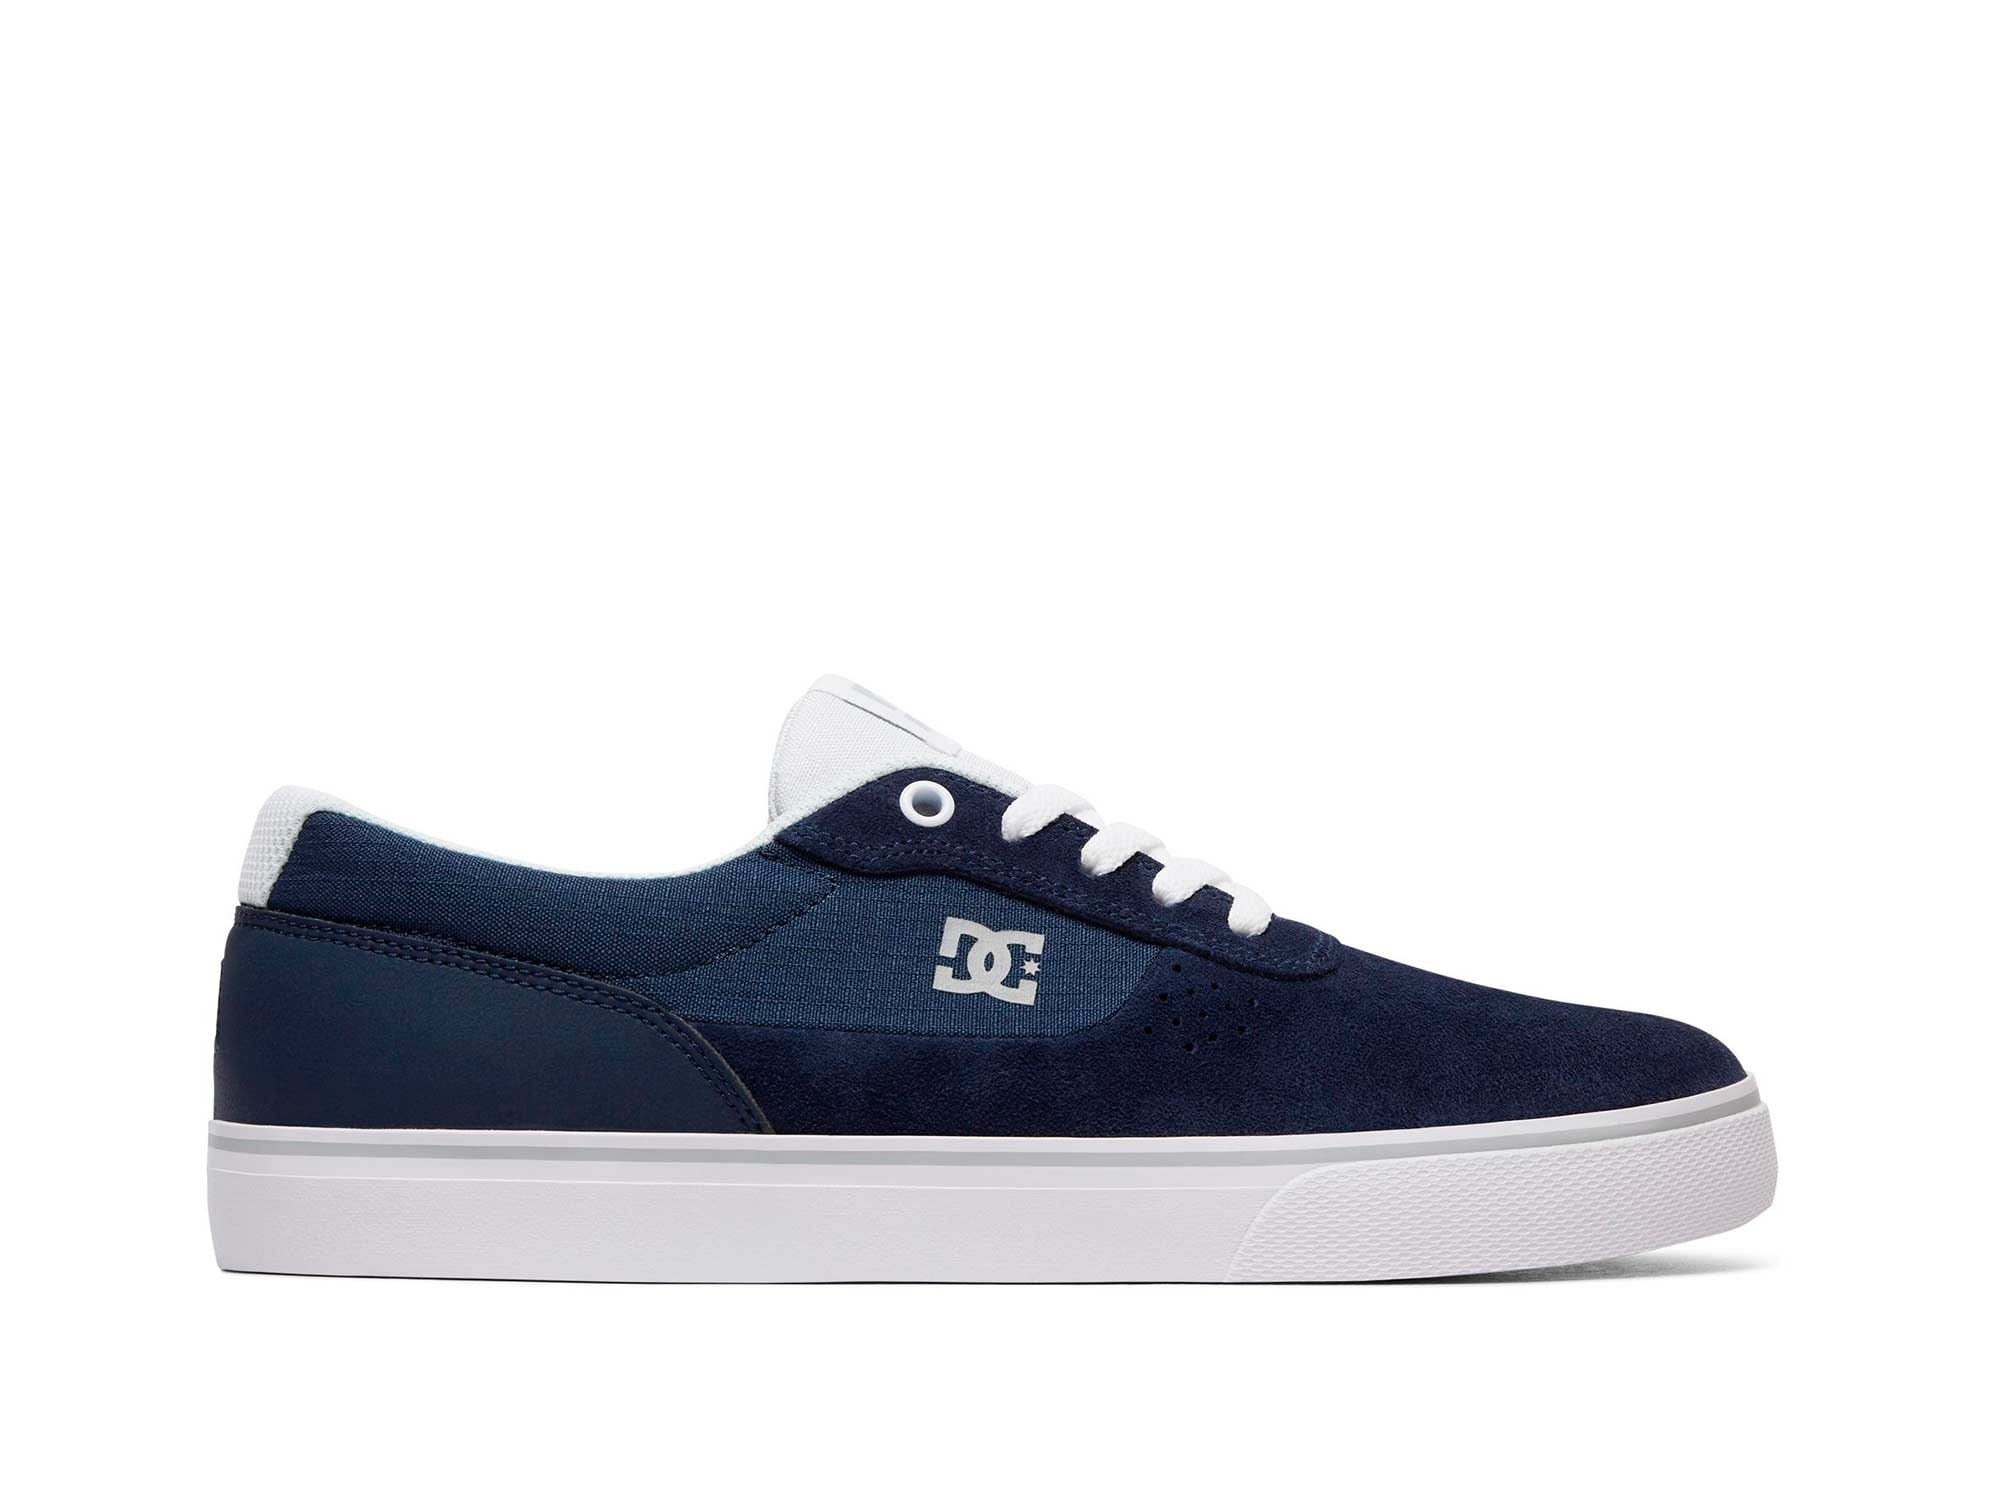 Zapatilla Dc Switch Hombre Azul Adys300104Nvw